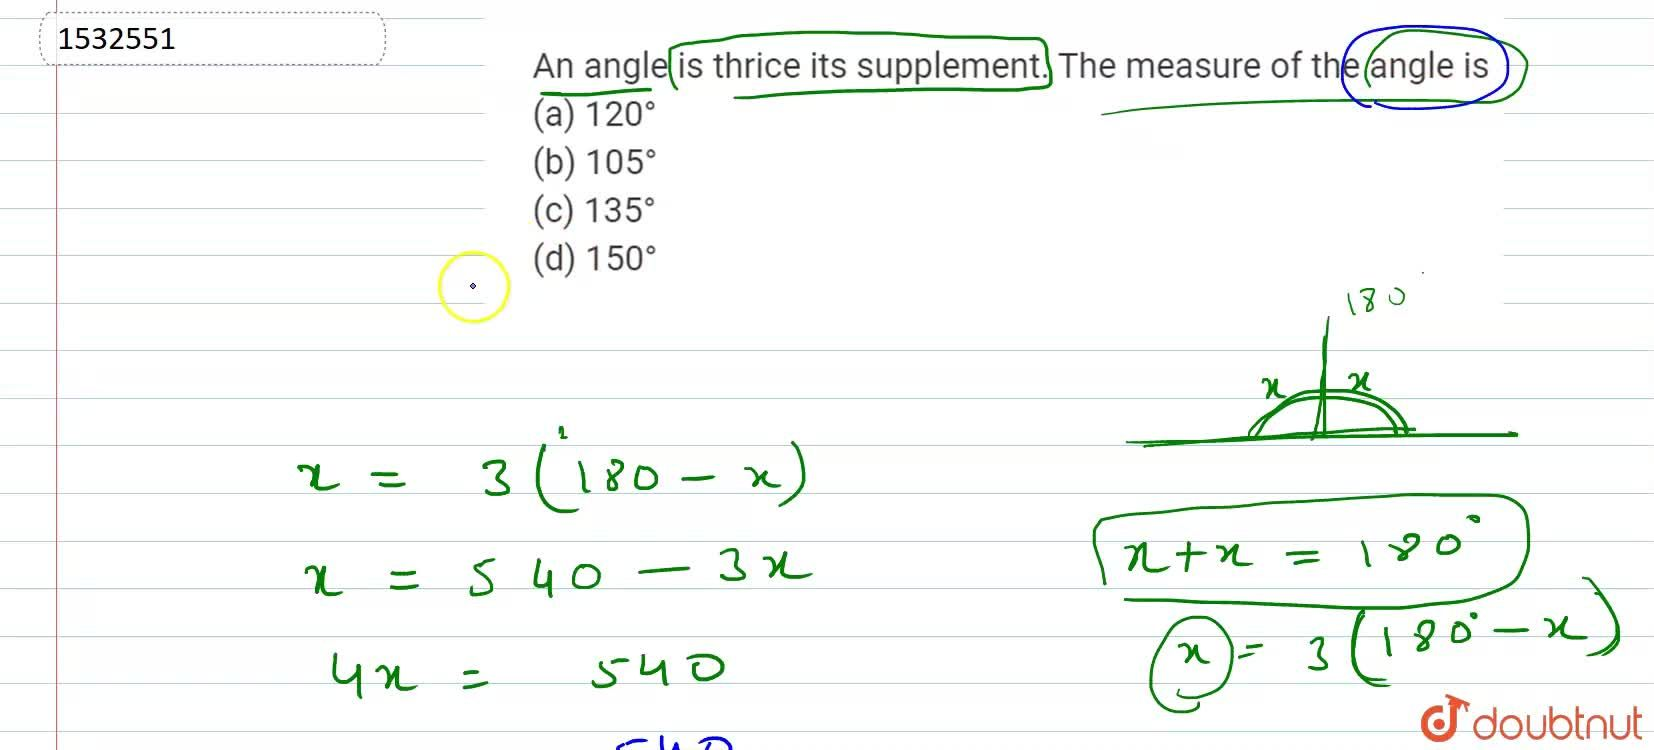 An angle is thrice its   supplement. The measure of the angle is (a) ( b ) (c) (d) (e) 120^(( f )0( g ))( h ) (i) (j) (b) ( k ) (l) (m) (n) 105^(( o )0( p ))( q ) (r) (s)    (c) ( d ) (e) (f) (g) 135^(( h )0( i ))( j ) (k) (l) (d) ( m ) (n) (o) (p) 150^(( q )0( r ))( s ) (t) (u)